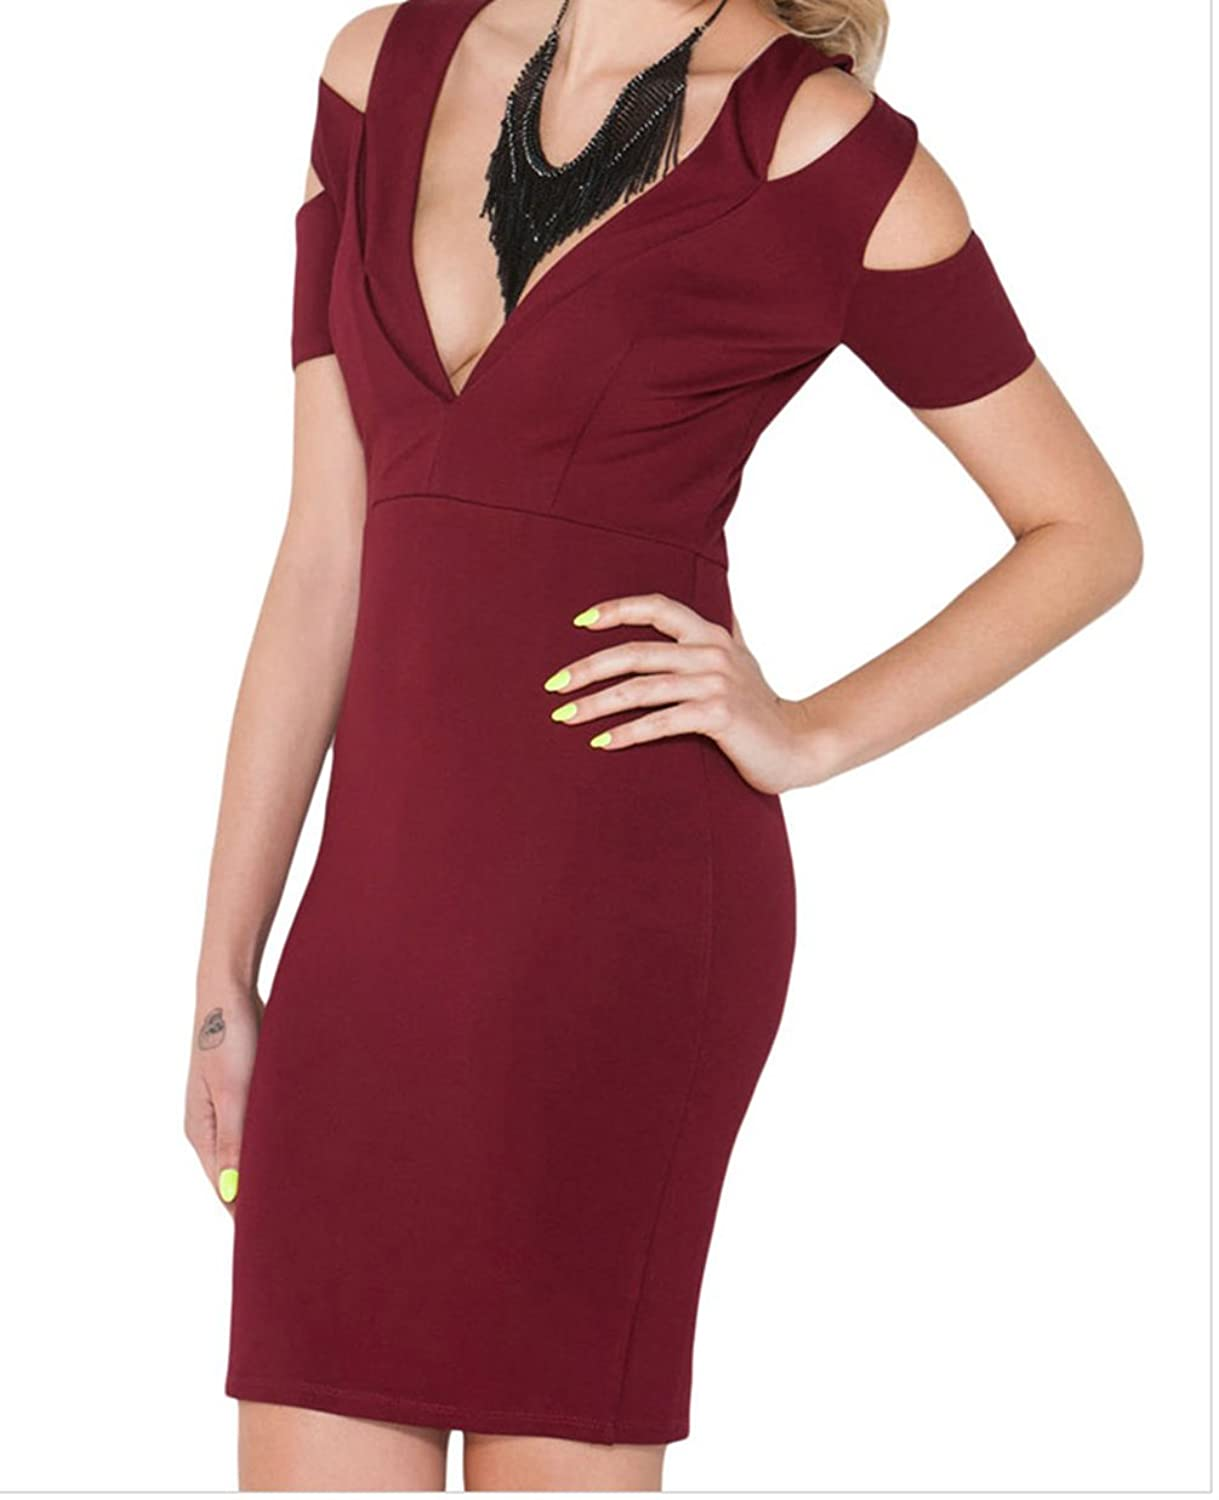 YeeATZ Knockout Cut-out Bare Shoulder Bodycon Dress